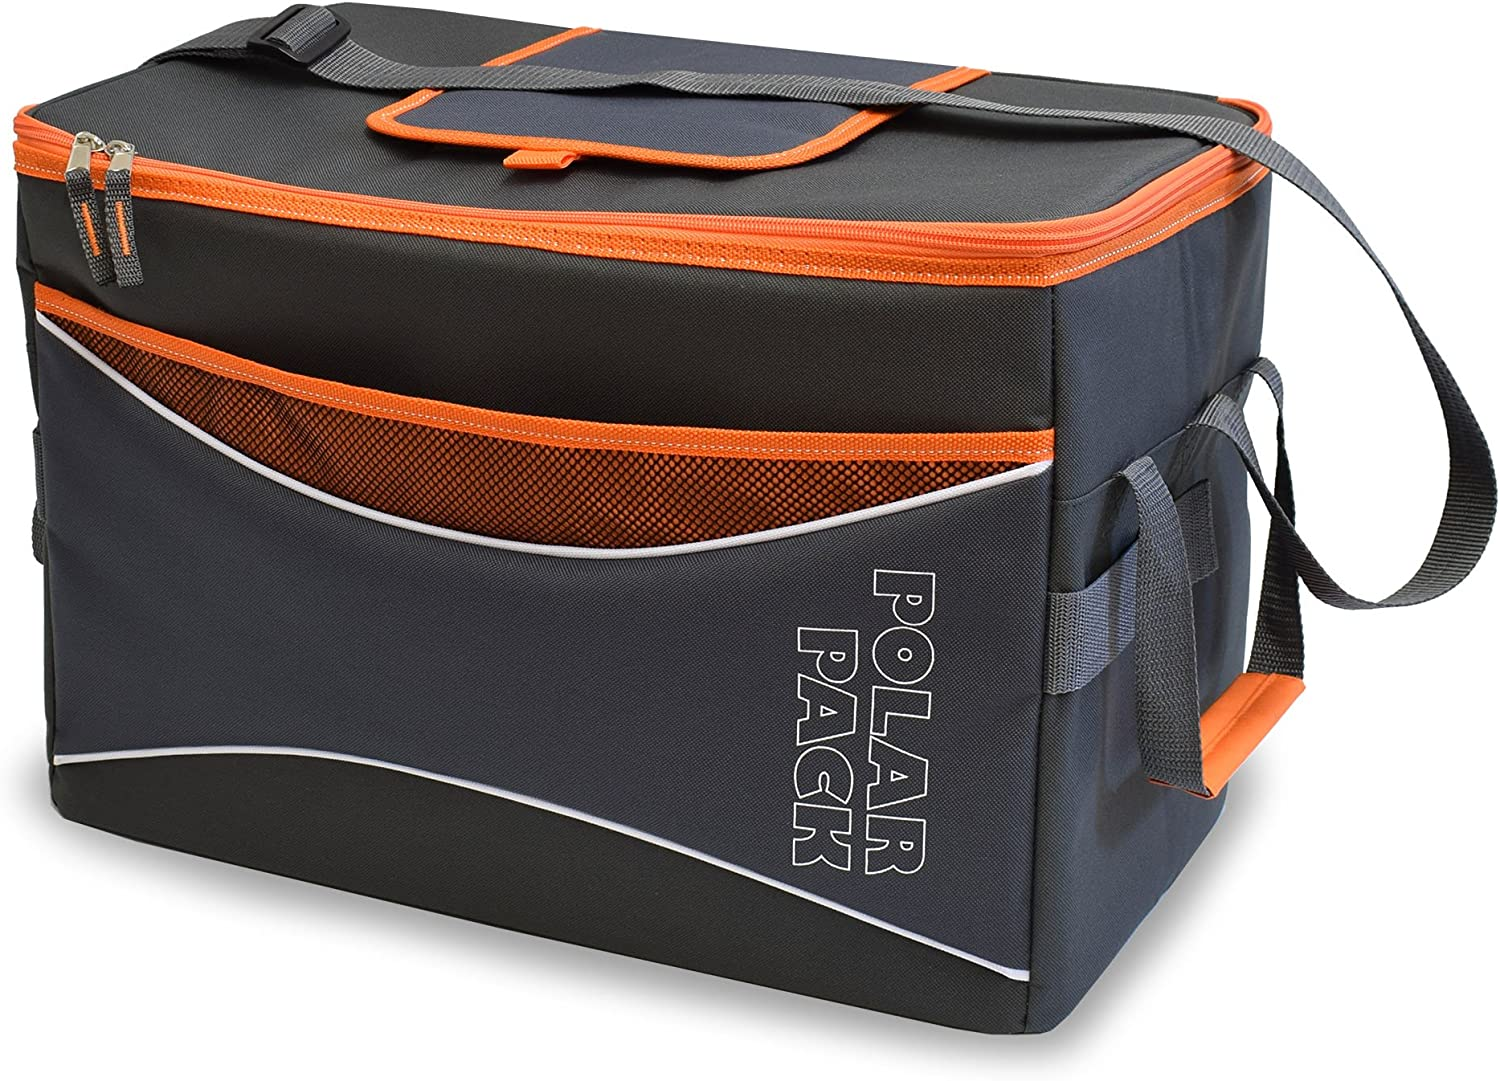 POLAR PACK Extra Large 48 Can Collapsible Cooler Bag Soft Portable Insulated Picnic Bag Outdoor Indoor Travel Lunch Bag for Camping Hiking Events Travel Concerts Sports Black Char Orange